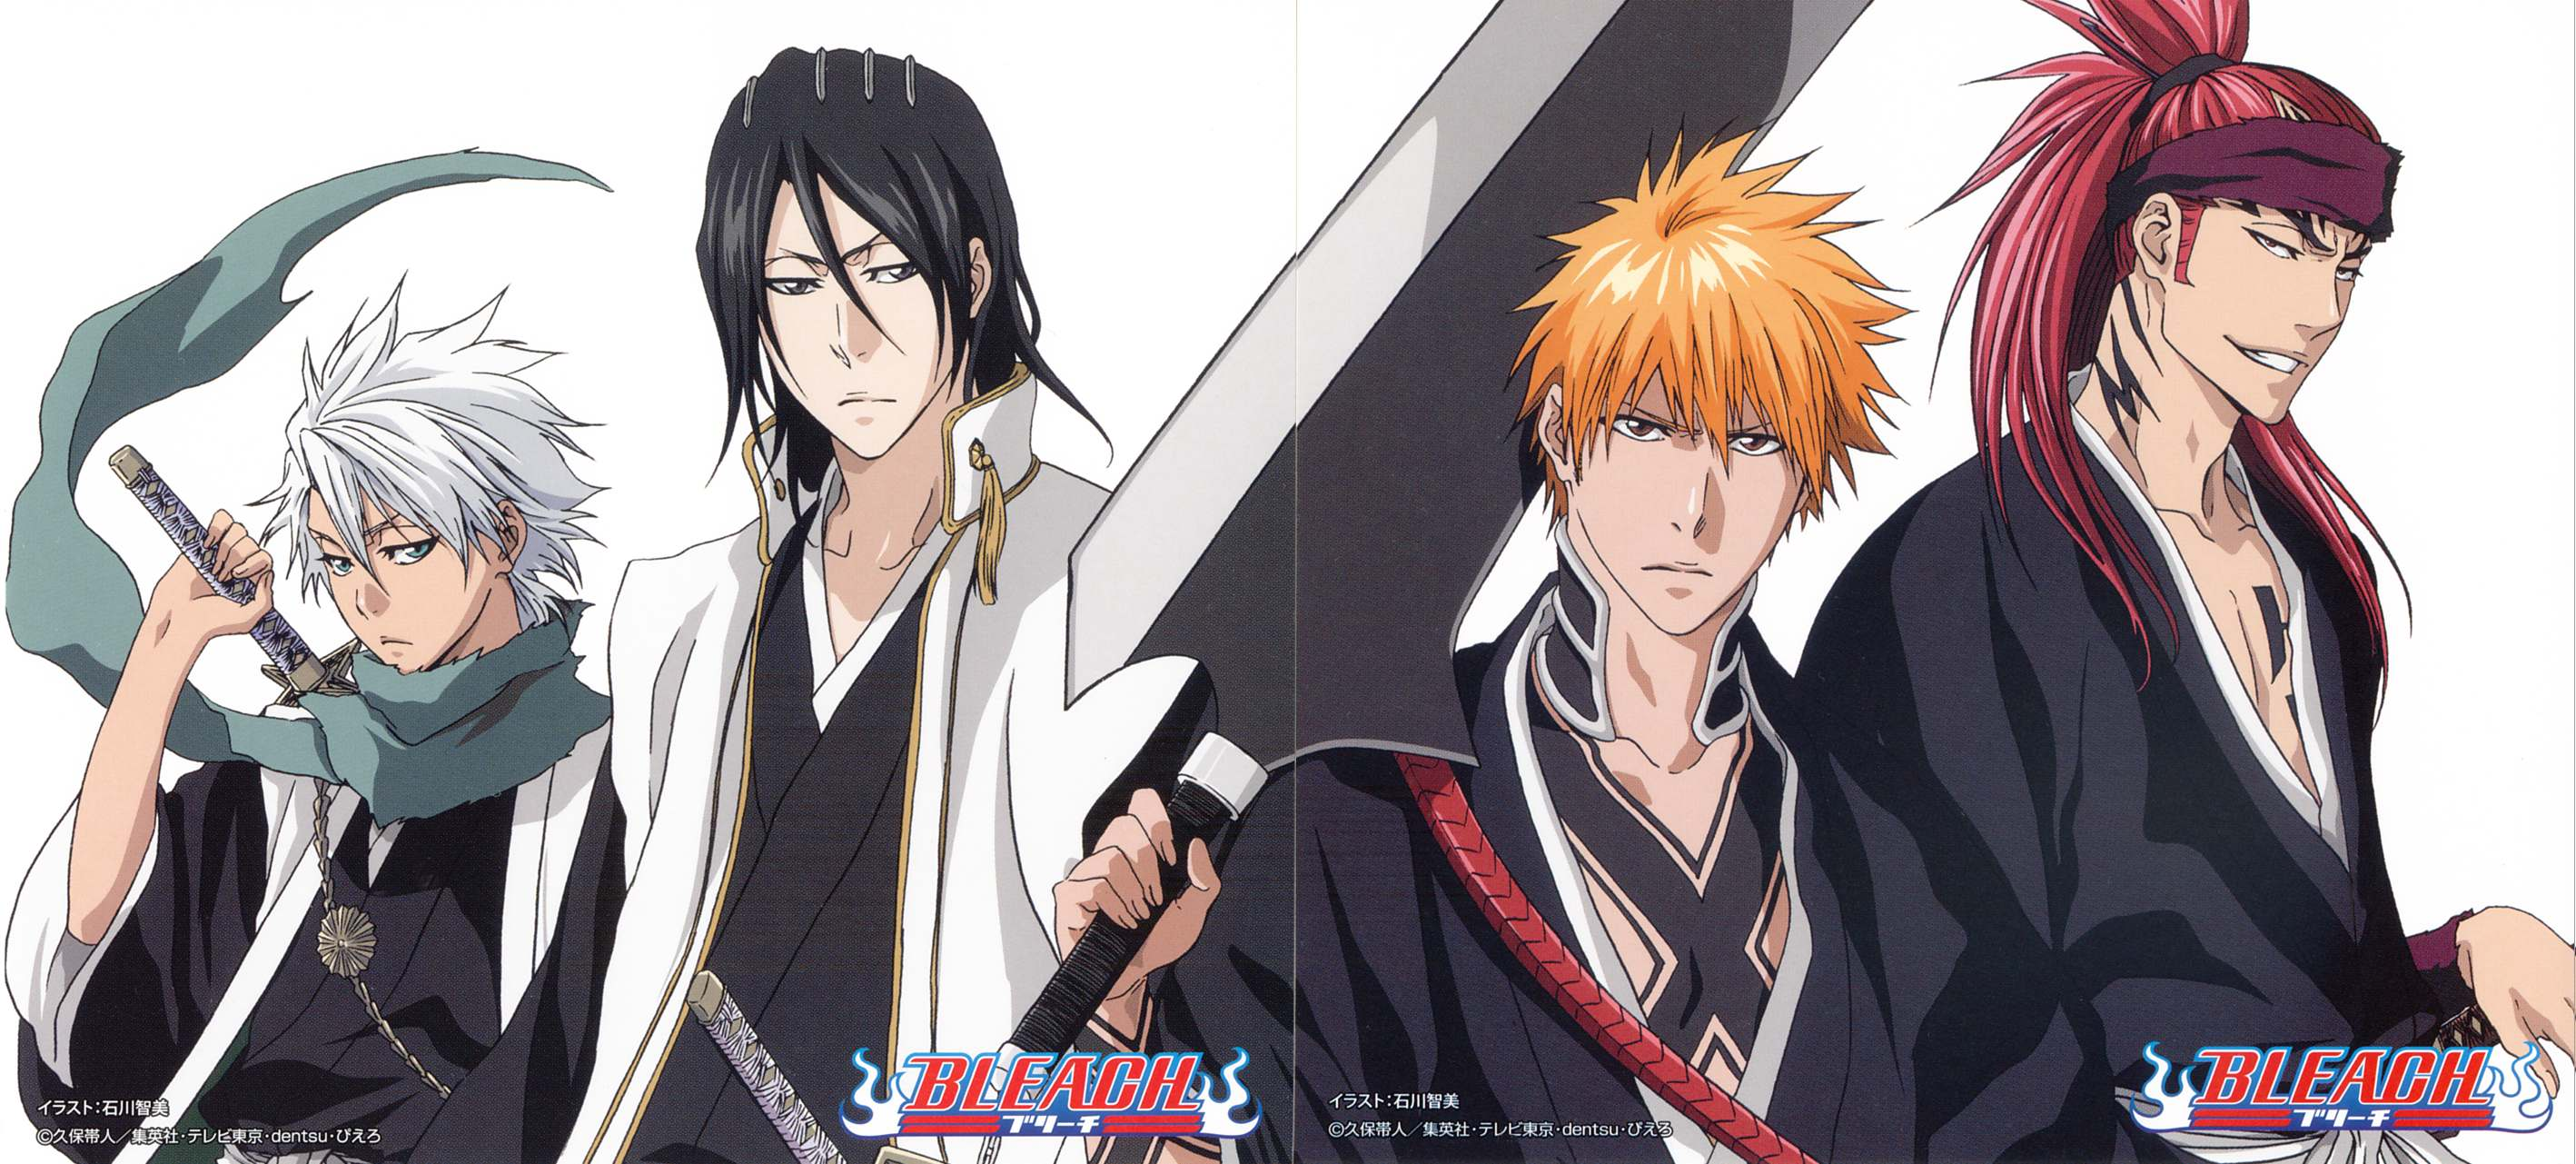 Bleach anime images bleach characters hd wallpaper and background photos